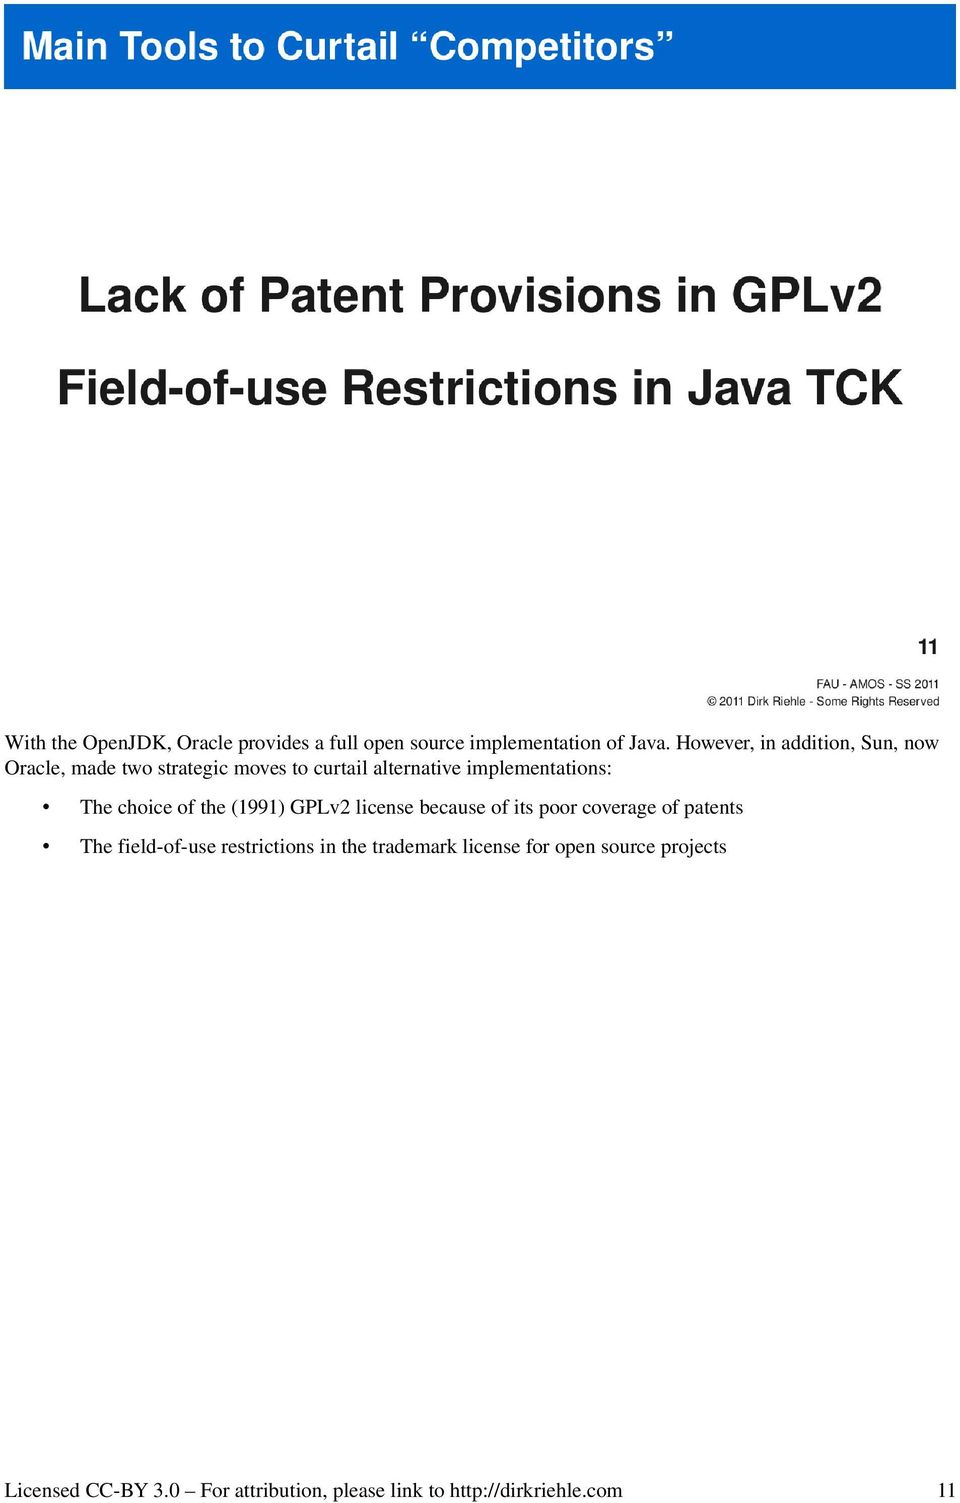 alternative implementations: The choice of the (1991) GPLv2 license because of its